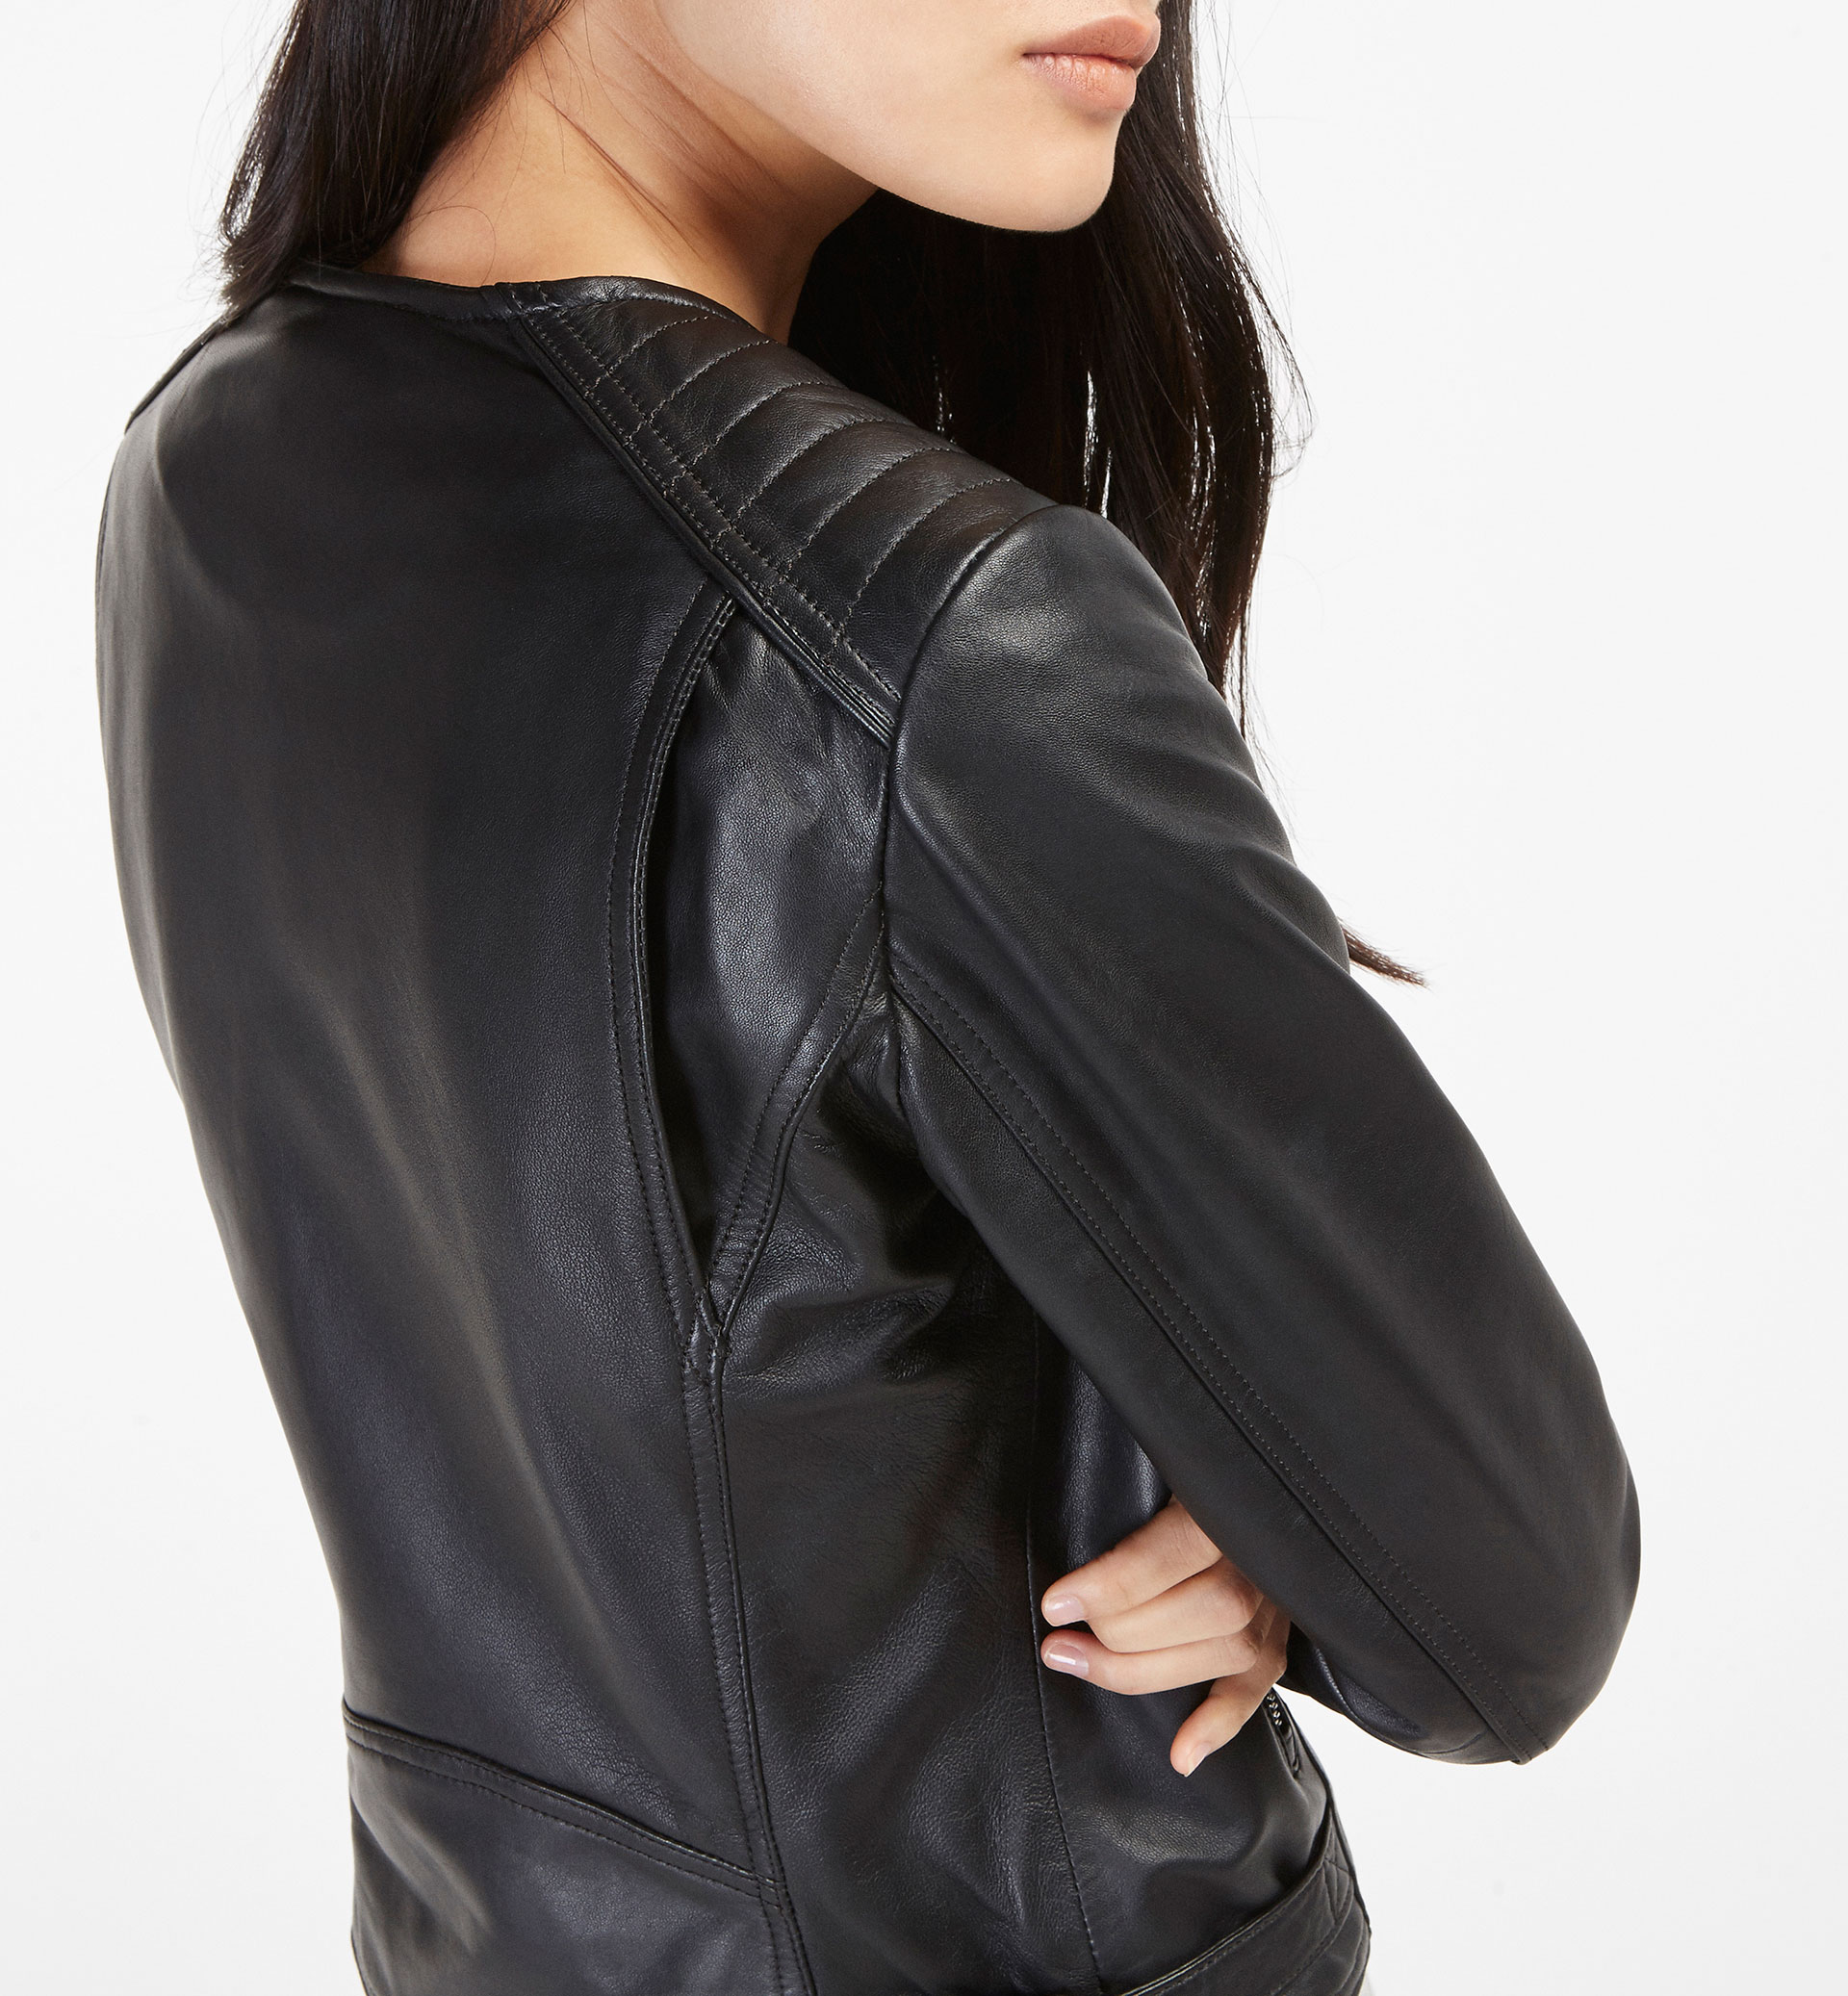 BLACK LEATHER JACKET WITHOUT COLLAR